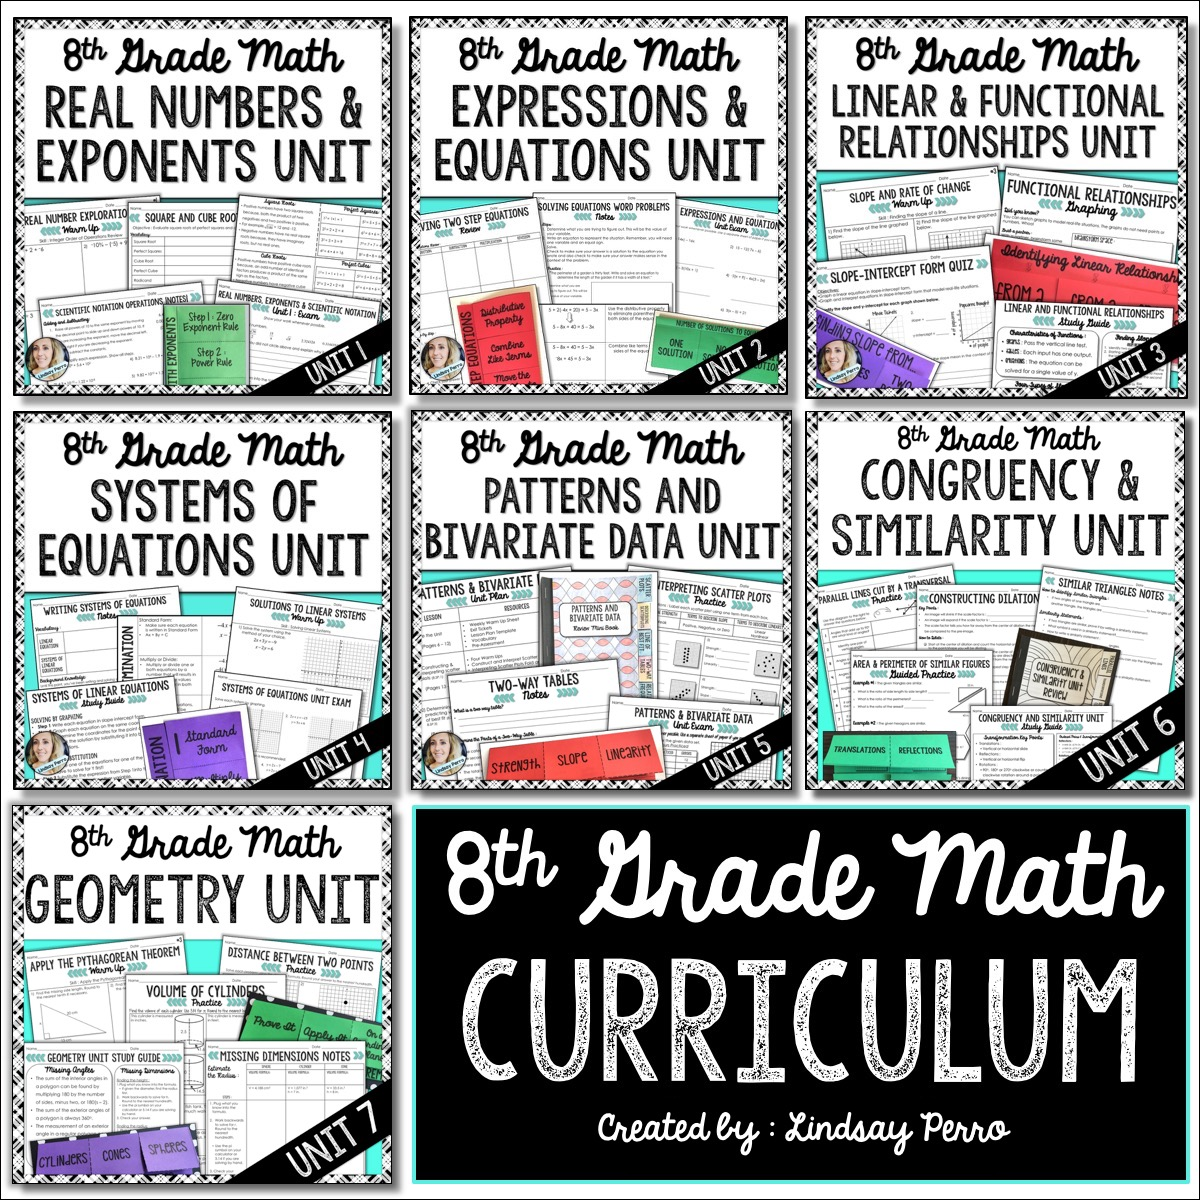 8th Grade Math Curriculum